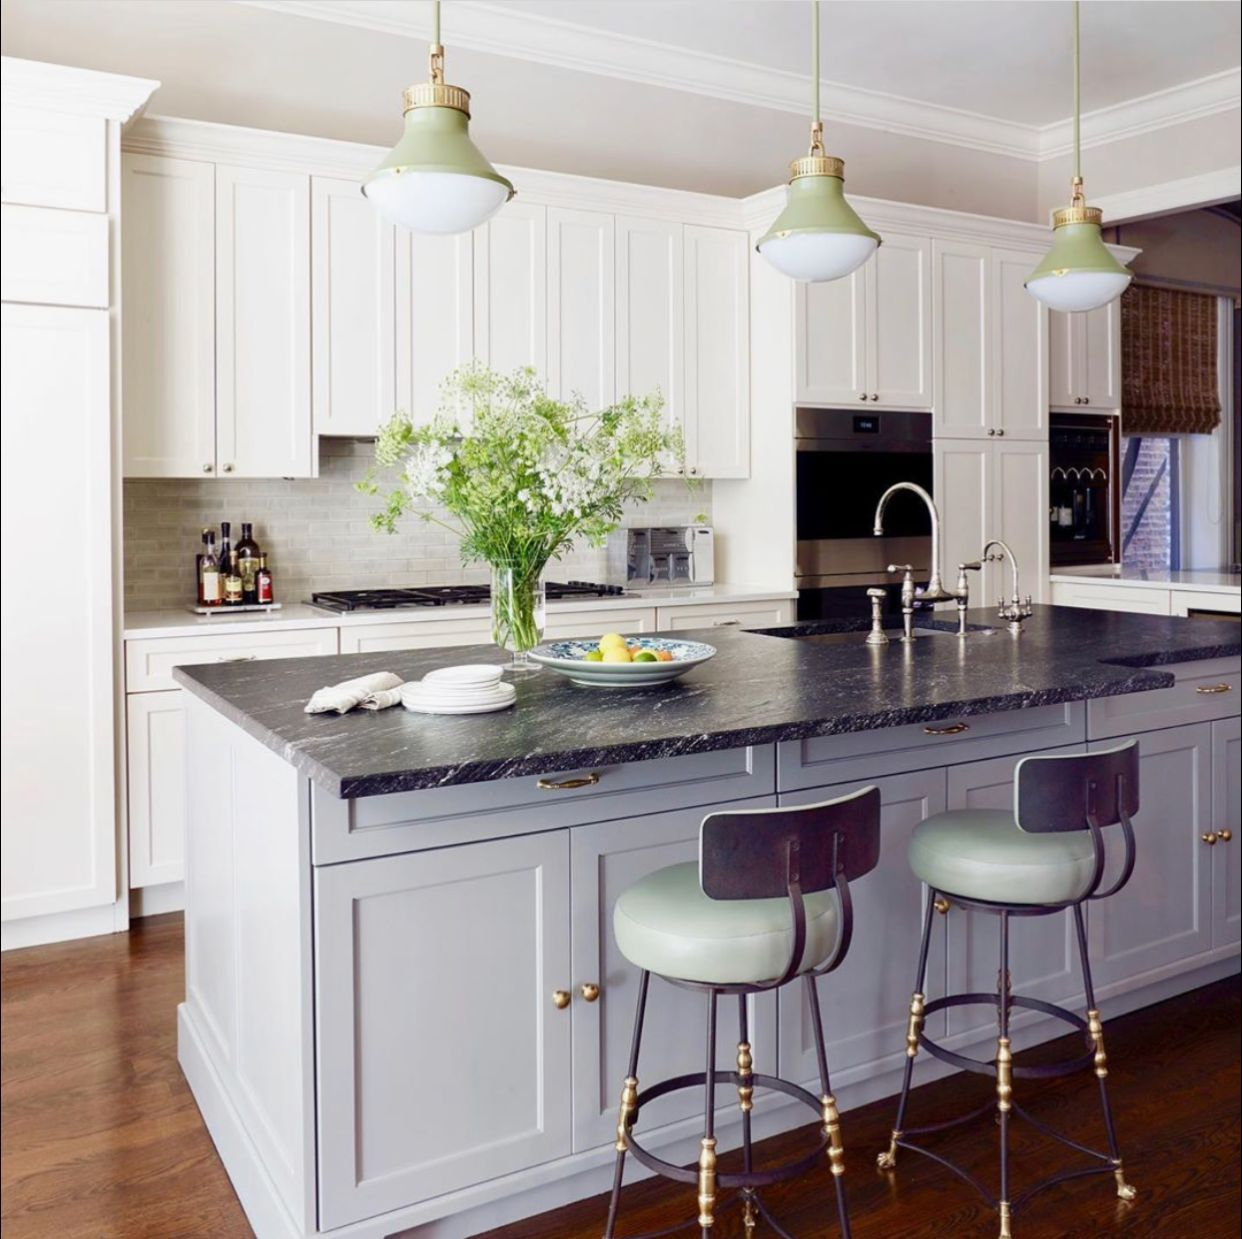 Kitchen Envy How Stunning Is This Kitchen By Jamesthomasinteriors Spottedpaulferrante Our S In 2020 Granite Countertops Kitchen Bar Stools Black Granite Countertops